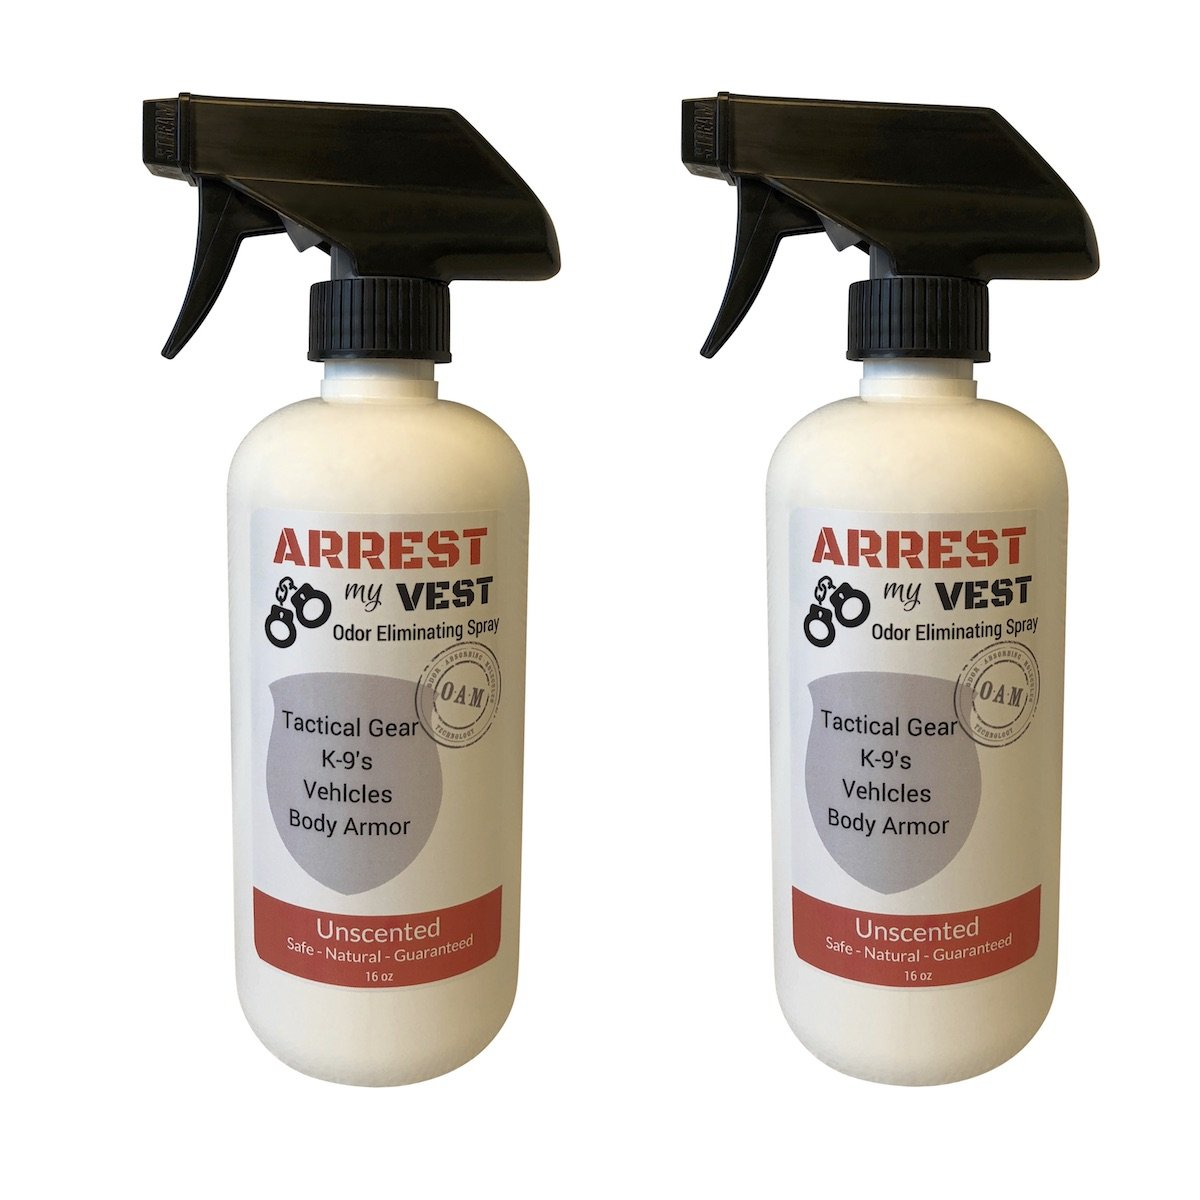 Arrest My Vest Body Armor Odor Eliminating Spray Safe on Kevlar and all other ballistic vests K9's and vehicles - Unscented - 2 16 oz Bottles